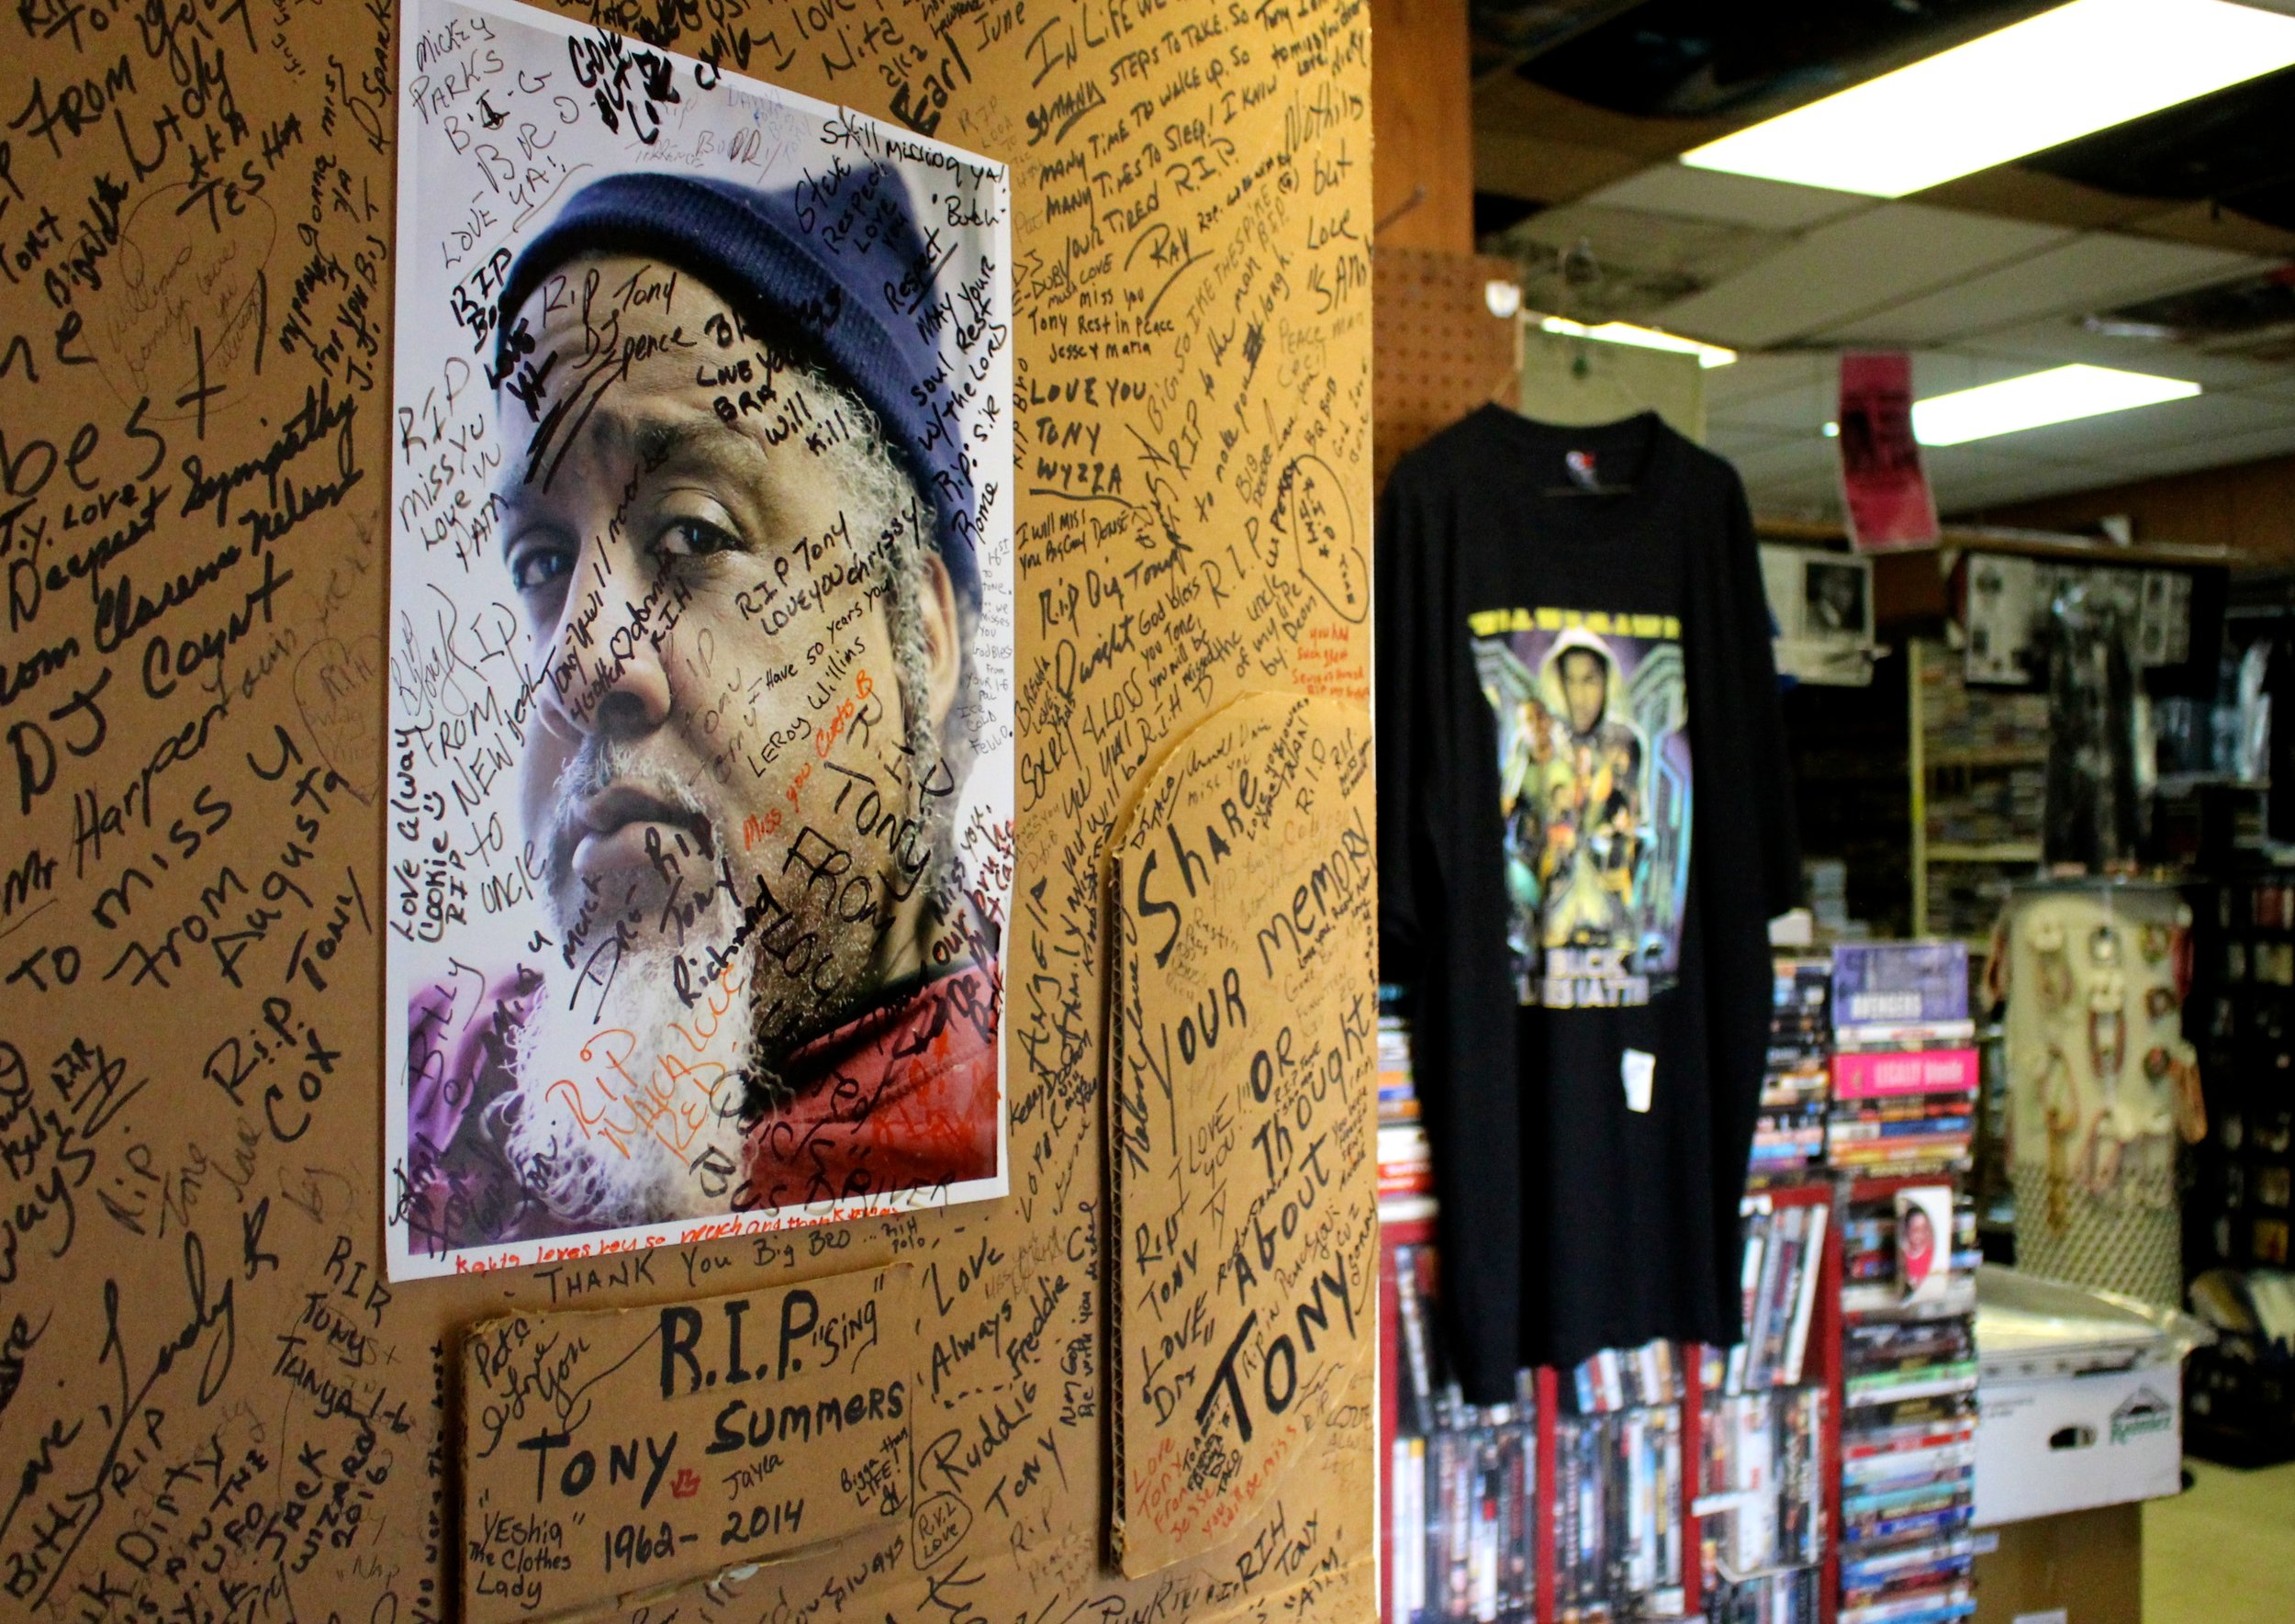 Just like Marie Henderson's cherished record collection, she extends her love for her family by putting up pictures of her customers, former employees, friends and neighbors. Featured is a shrine for Henderson's beloved friend, Tony Summers.